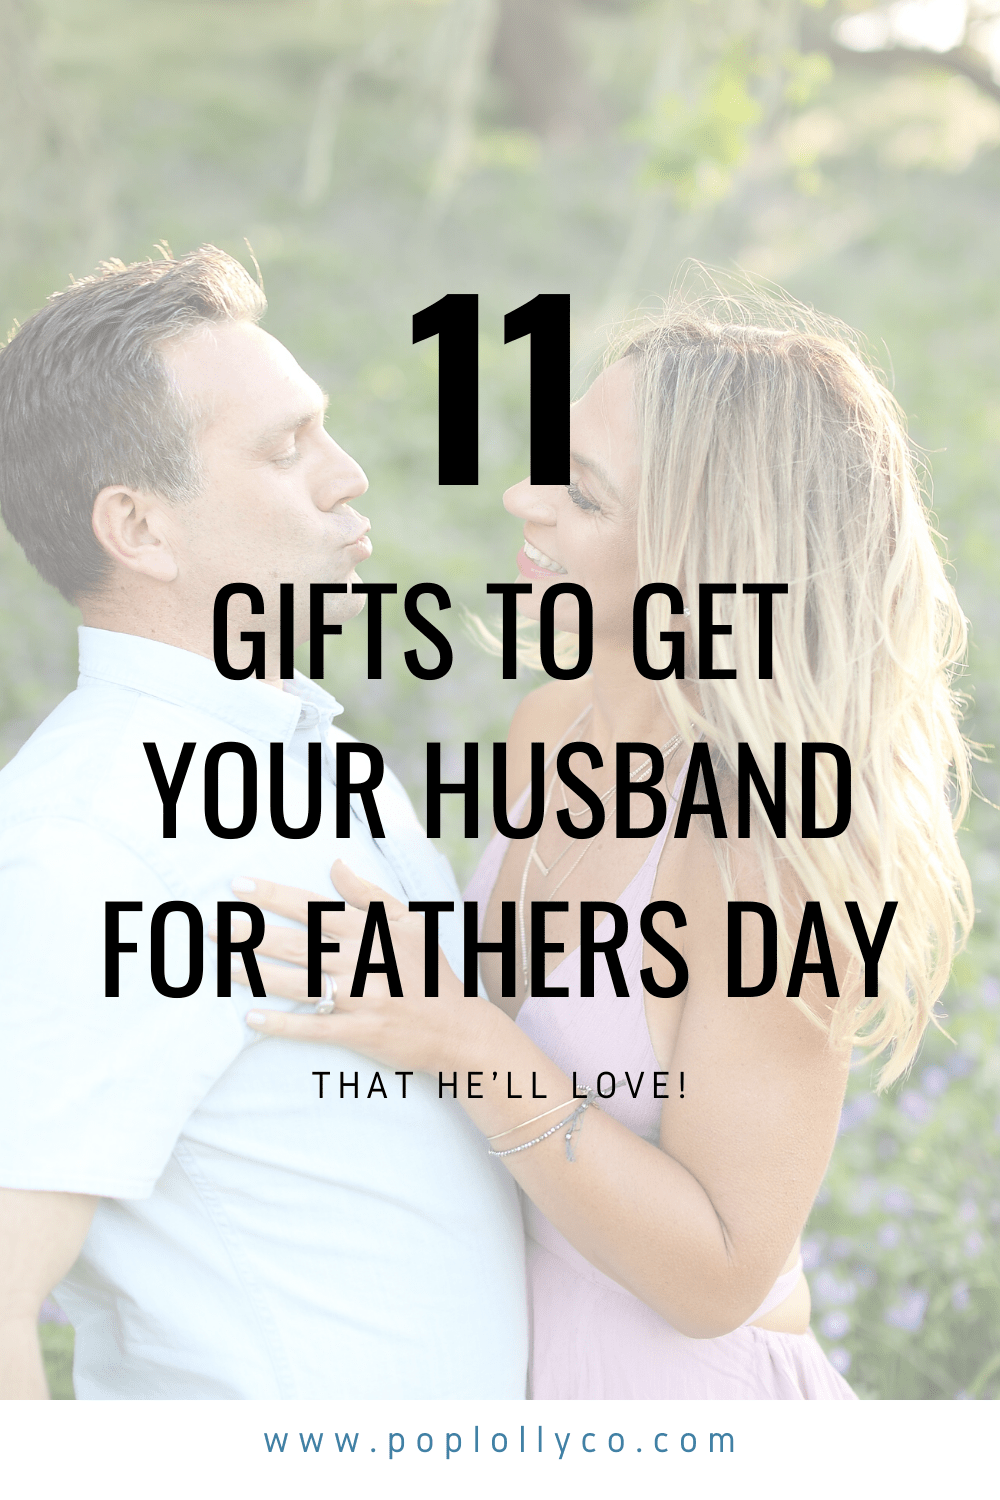 fathers day gift ideas from wife | Poplolly co